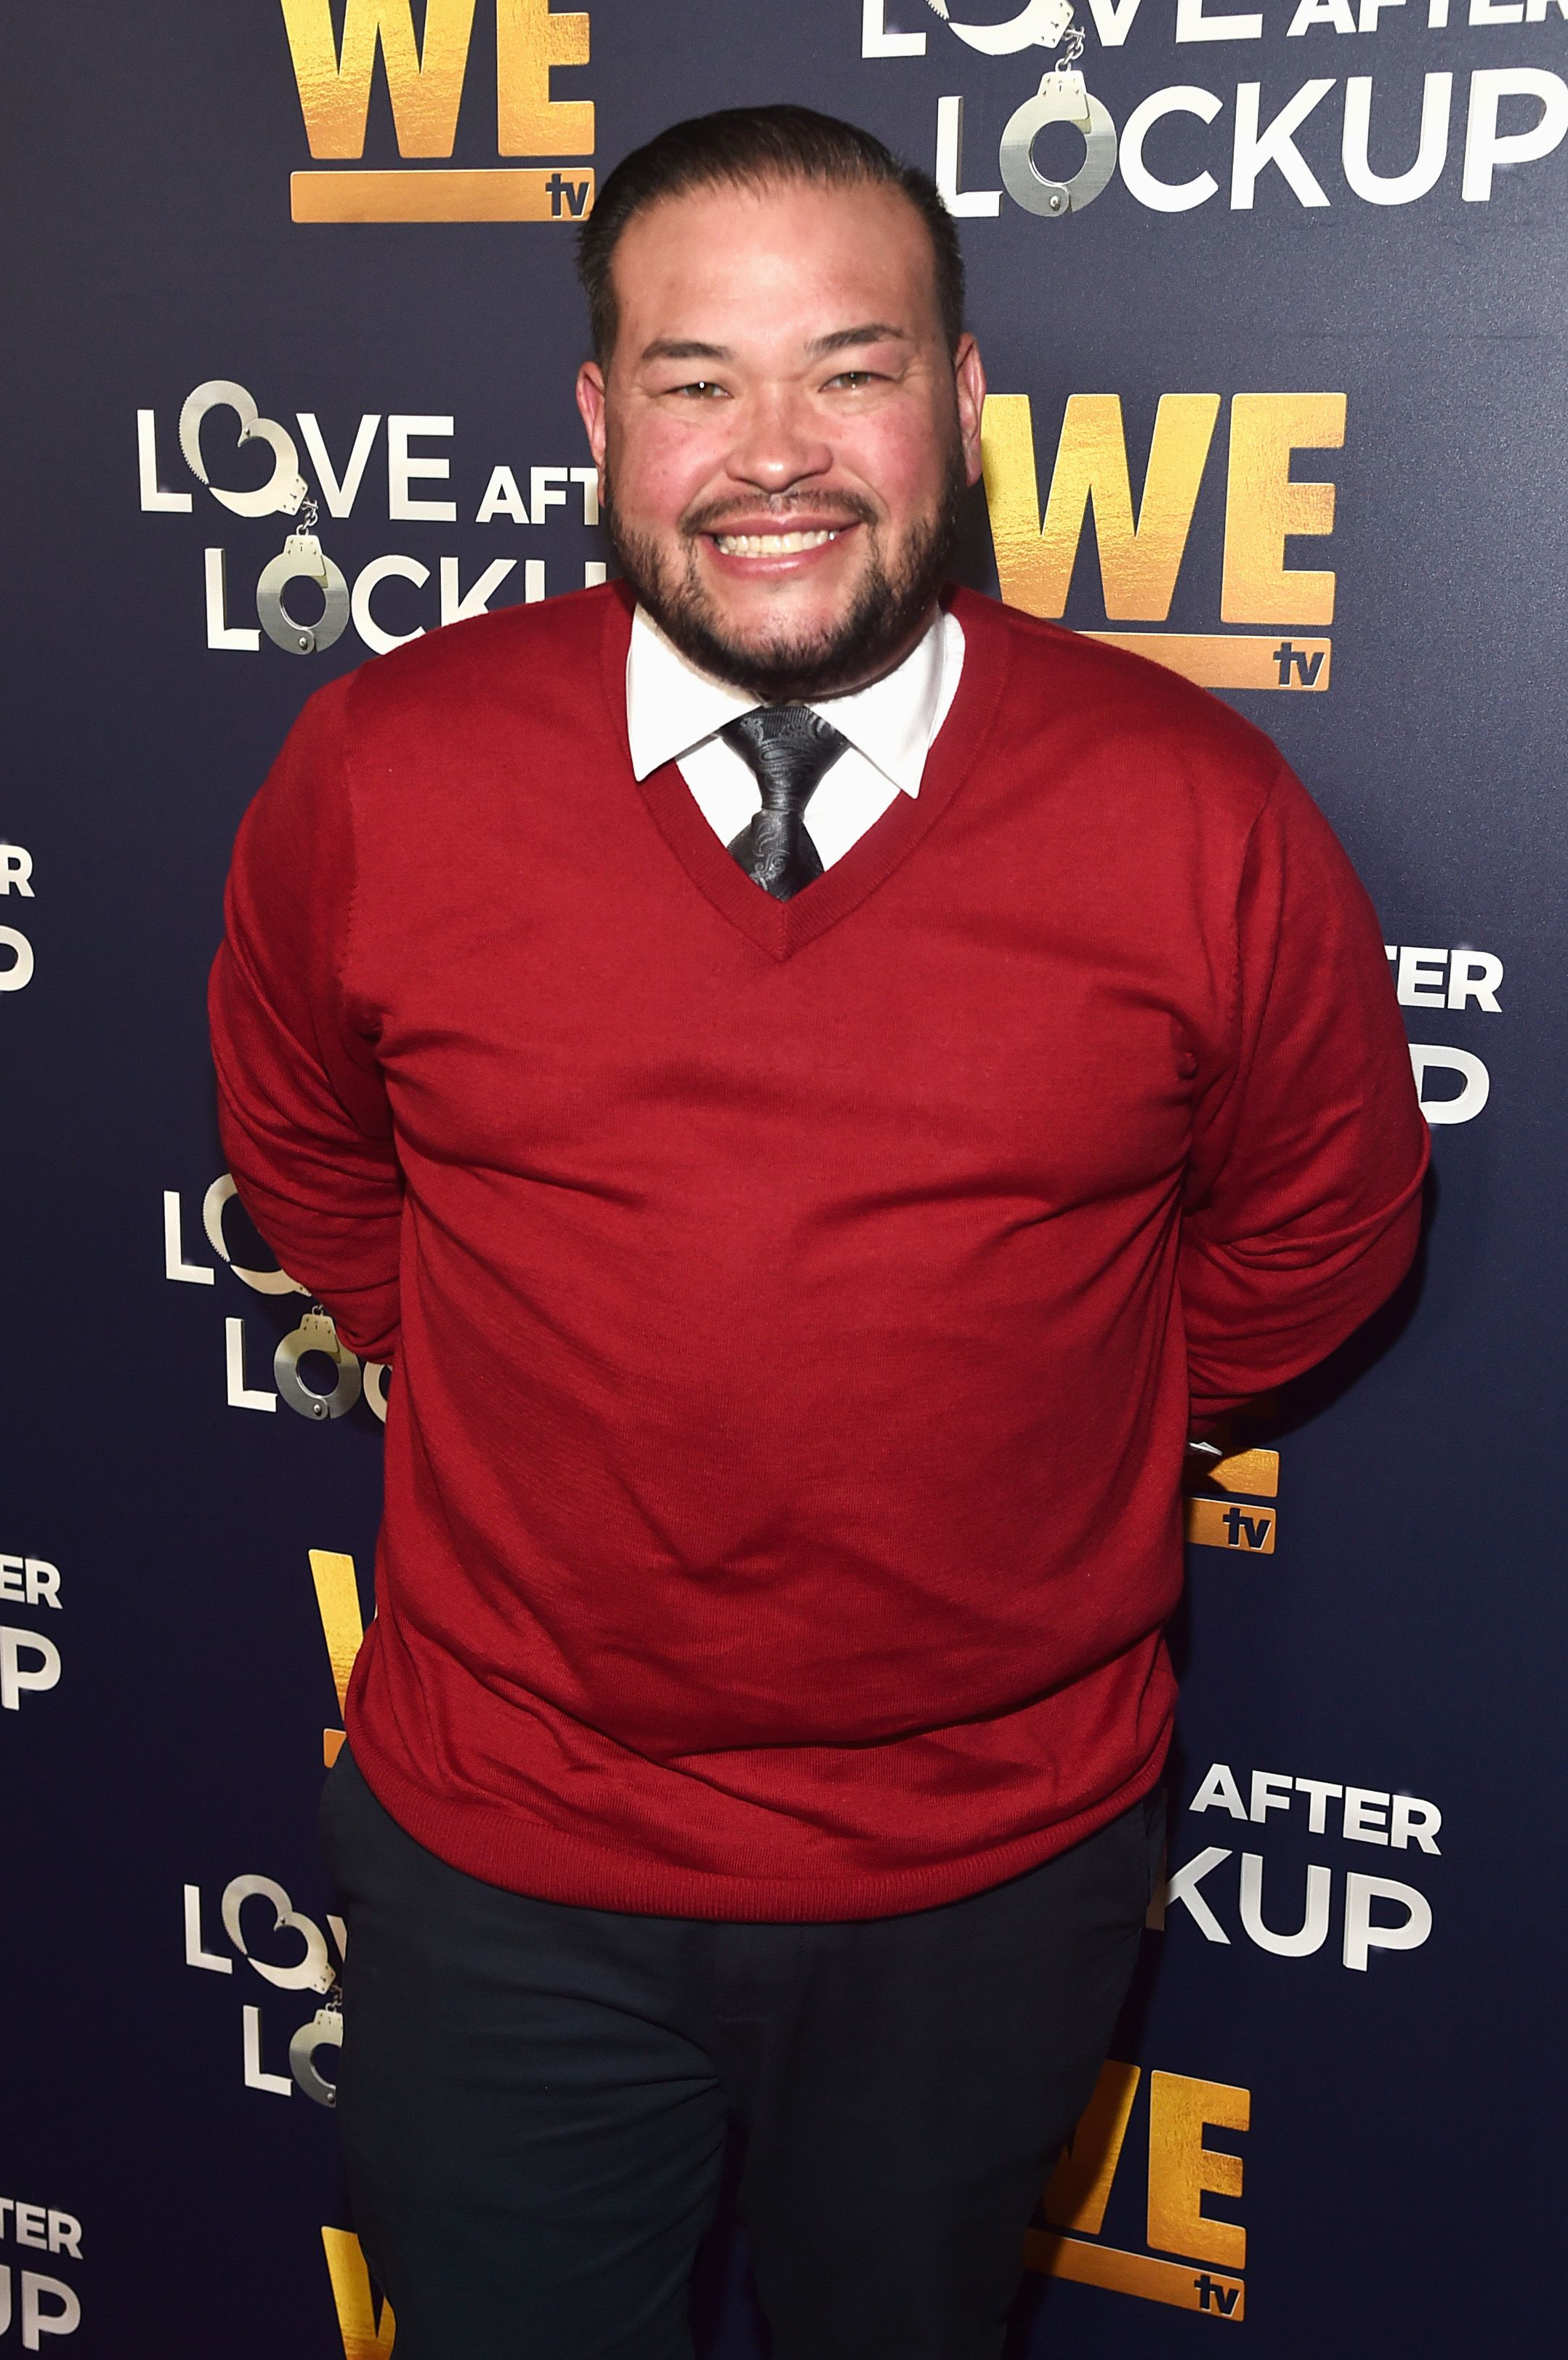 Jon Gosselin at WE TV on December 11, 2018, in Beverly Hills, California. | Photo: Getty Images